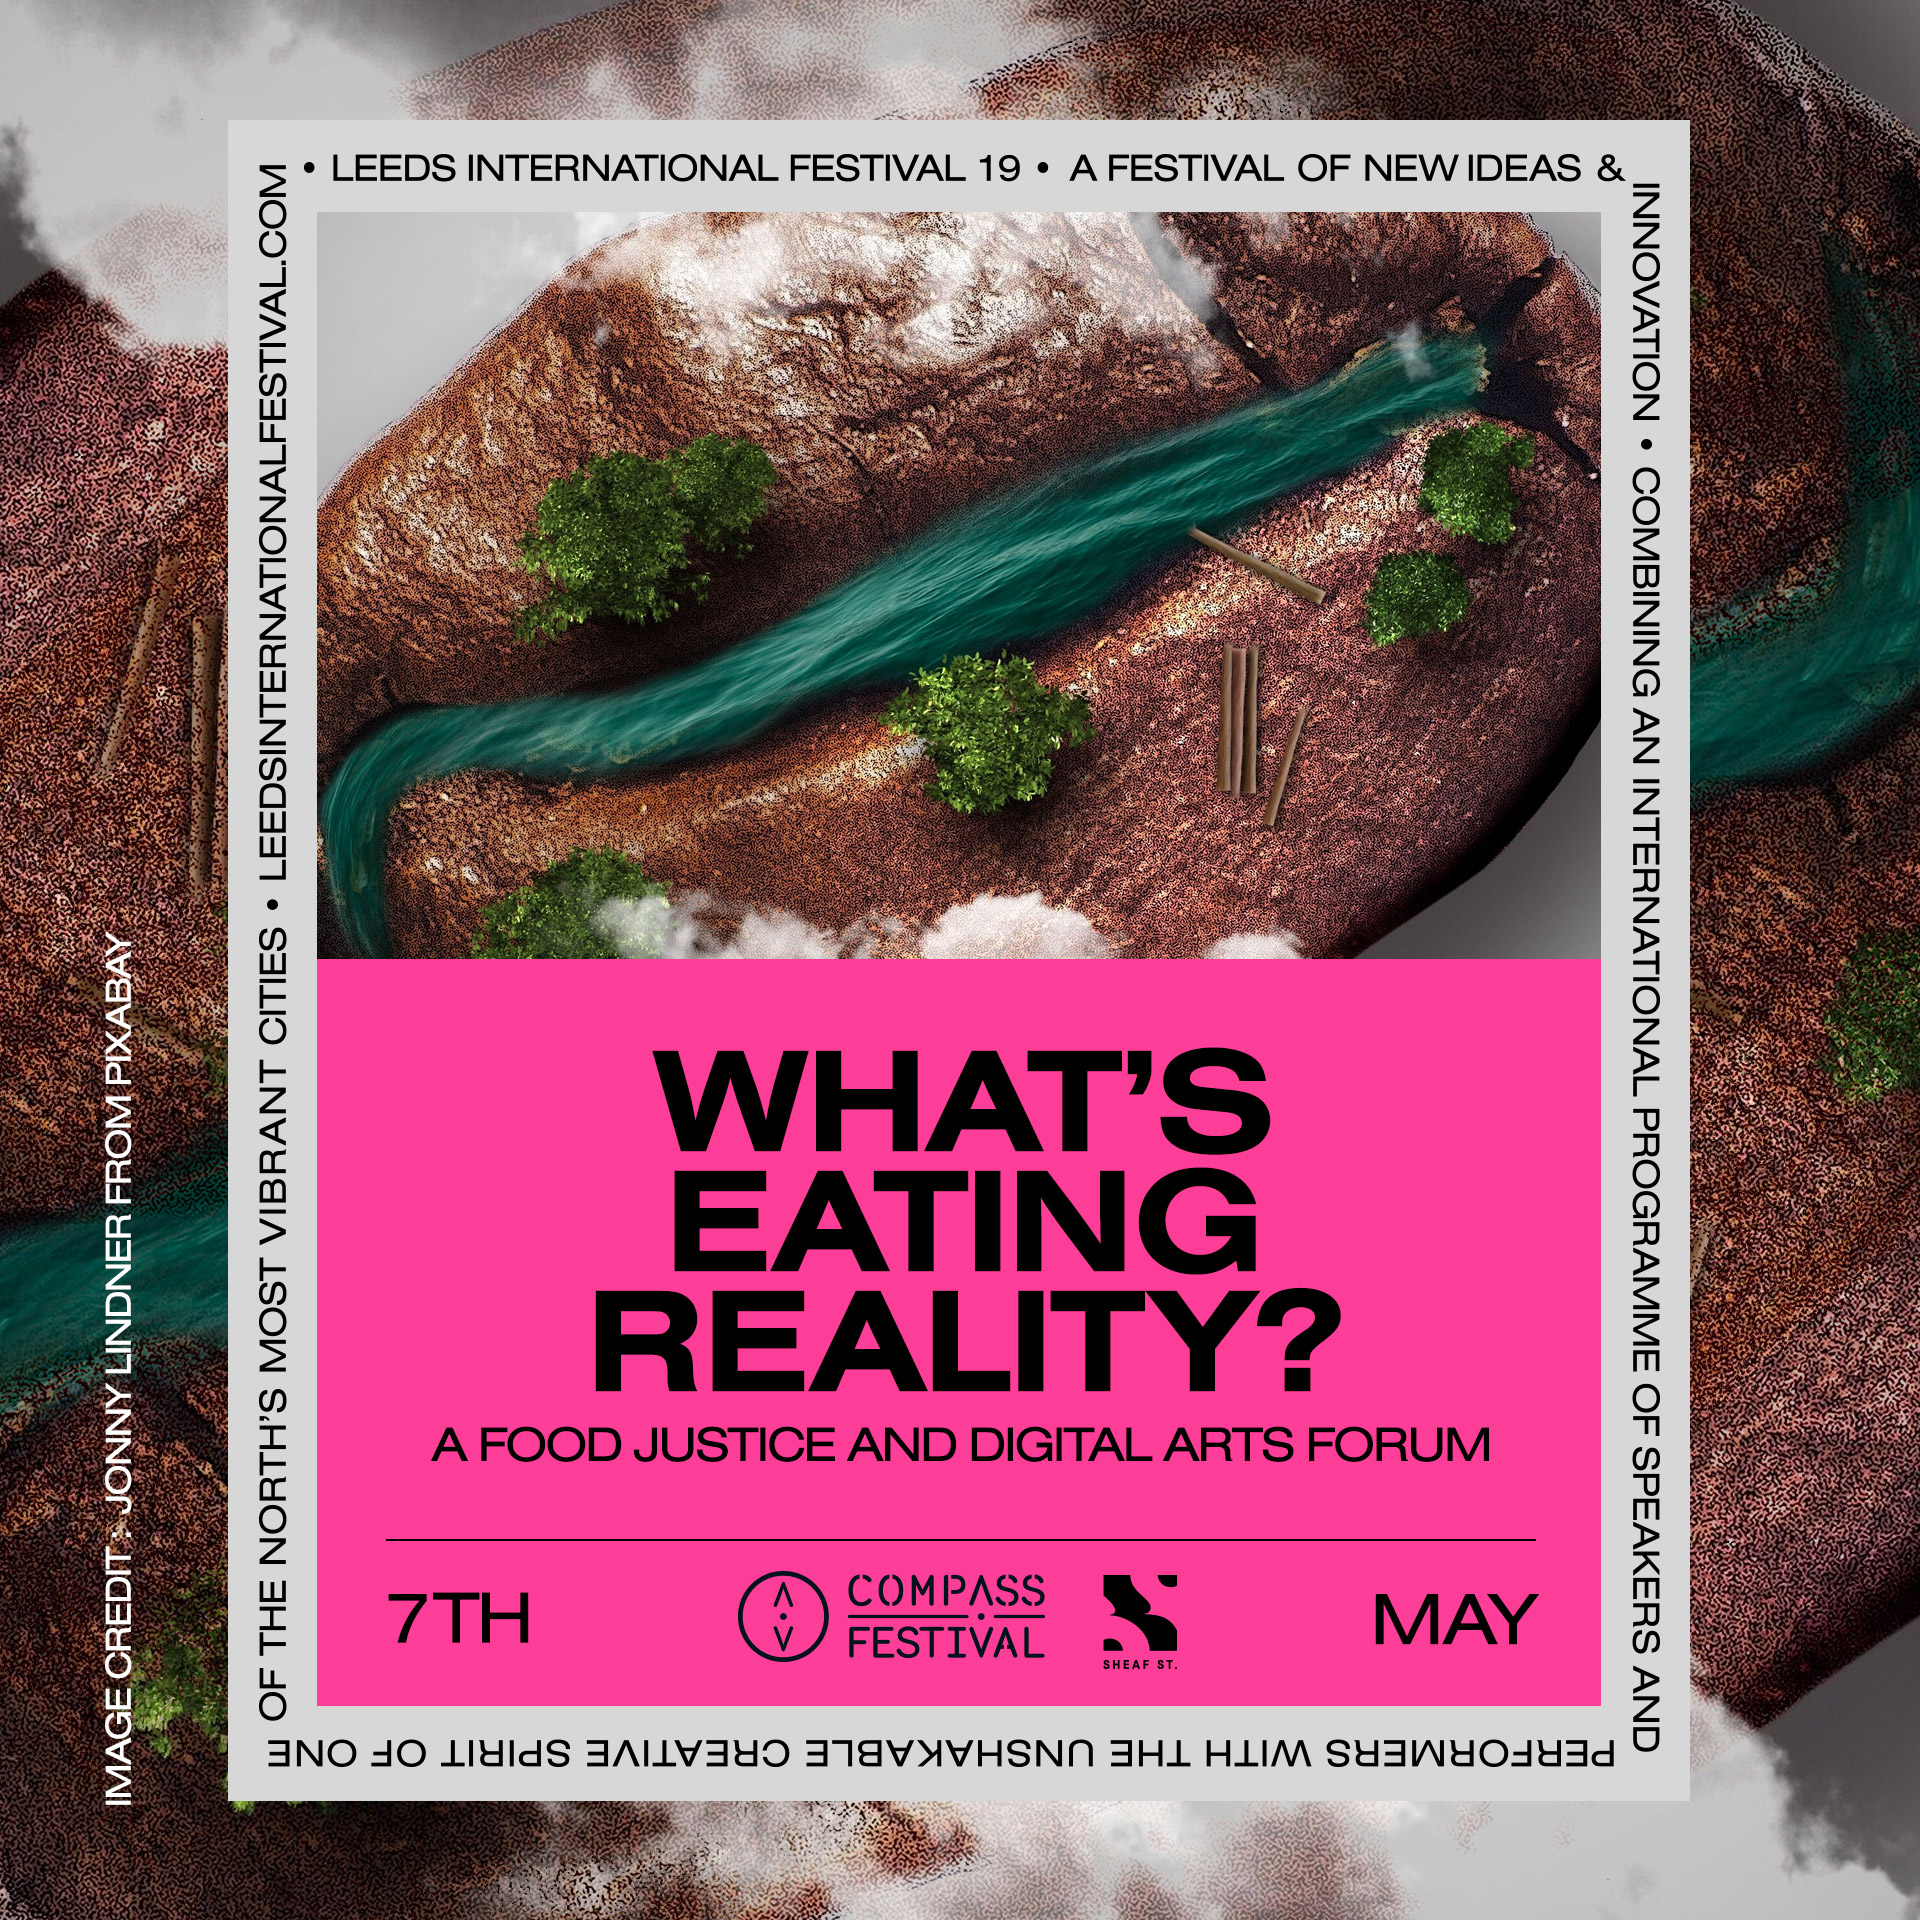 What's Eating Reality? A Food Justice and Digital Arts Forum